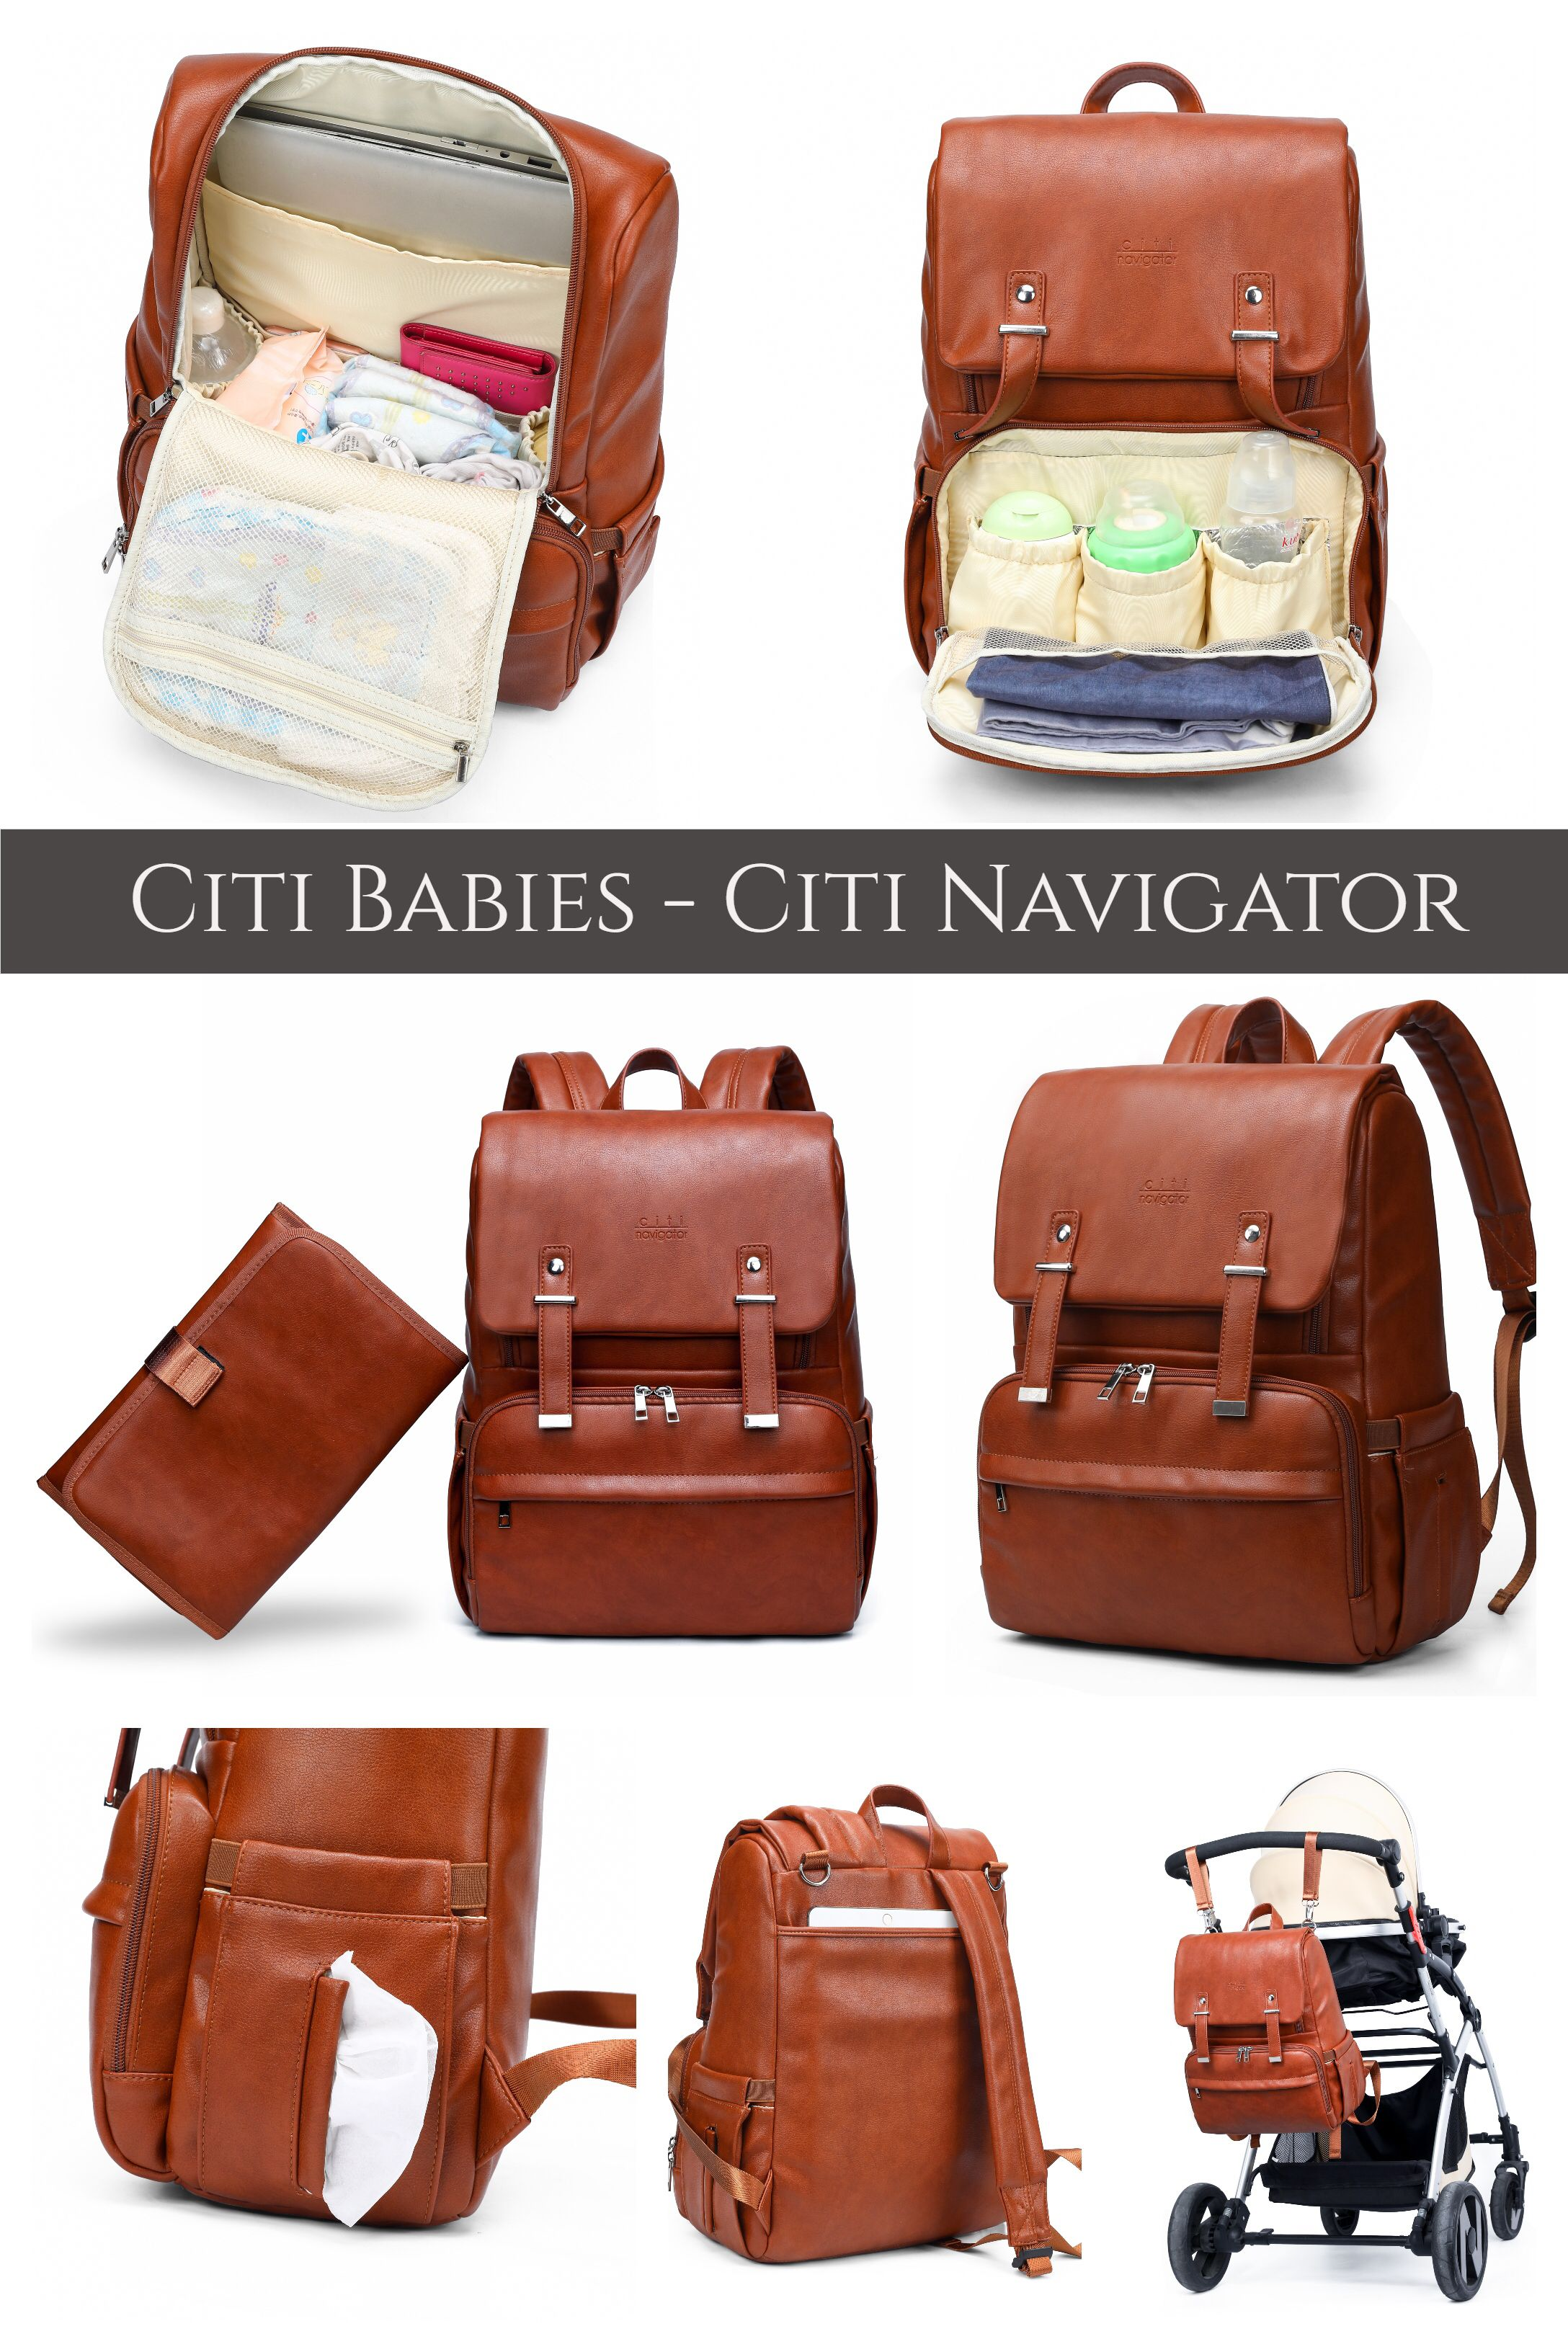 35b65bc55 The Citi Navigator is a designer diaper bag backpack with an ...